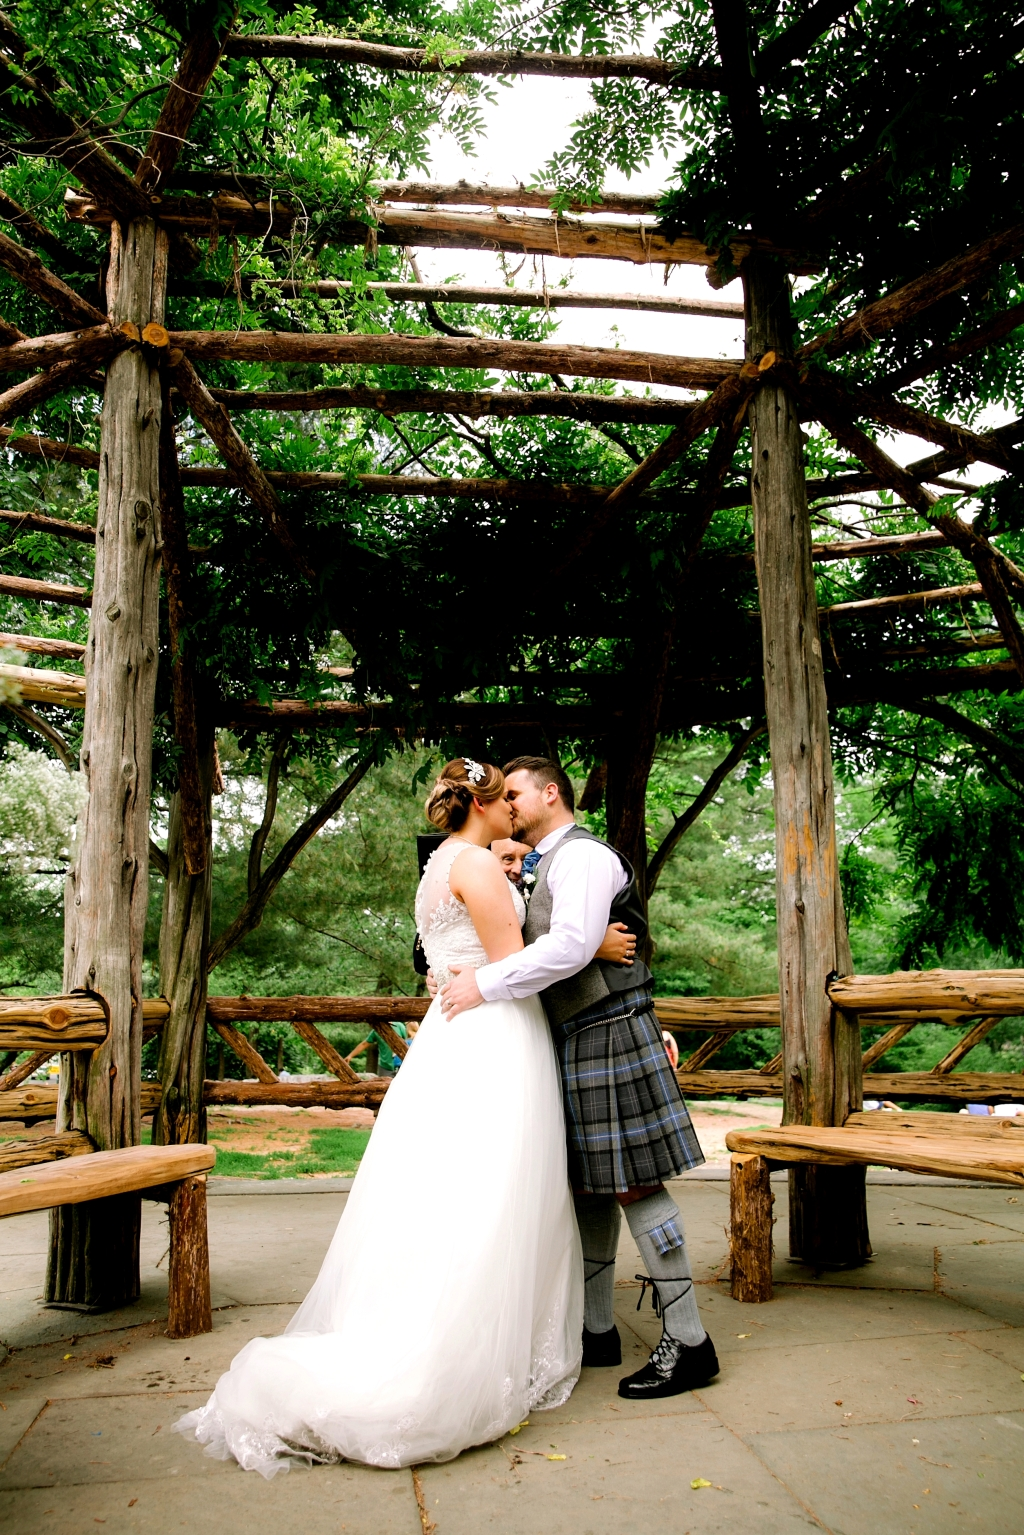 CentralPark_wedding_KC-112